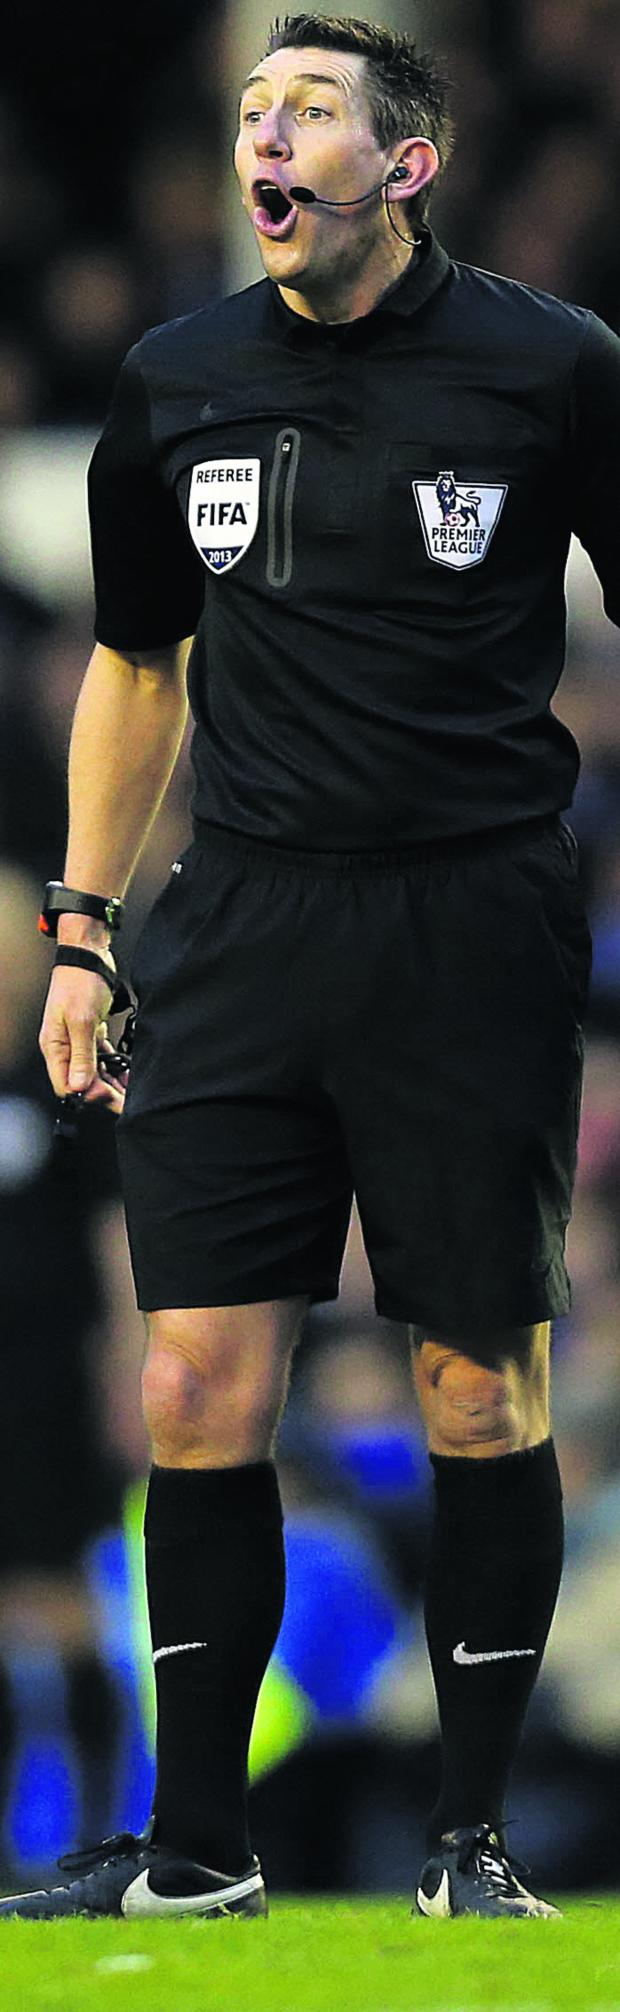 This Is Wiltshire: Lee Probert will take charge of the FA Cup final between Arsenal and Hull City next month